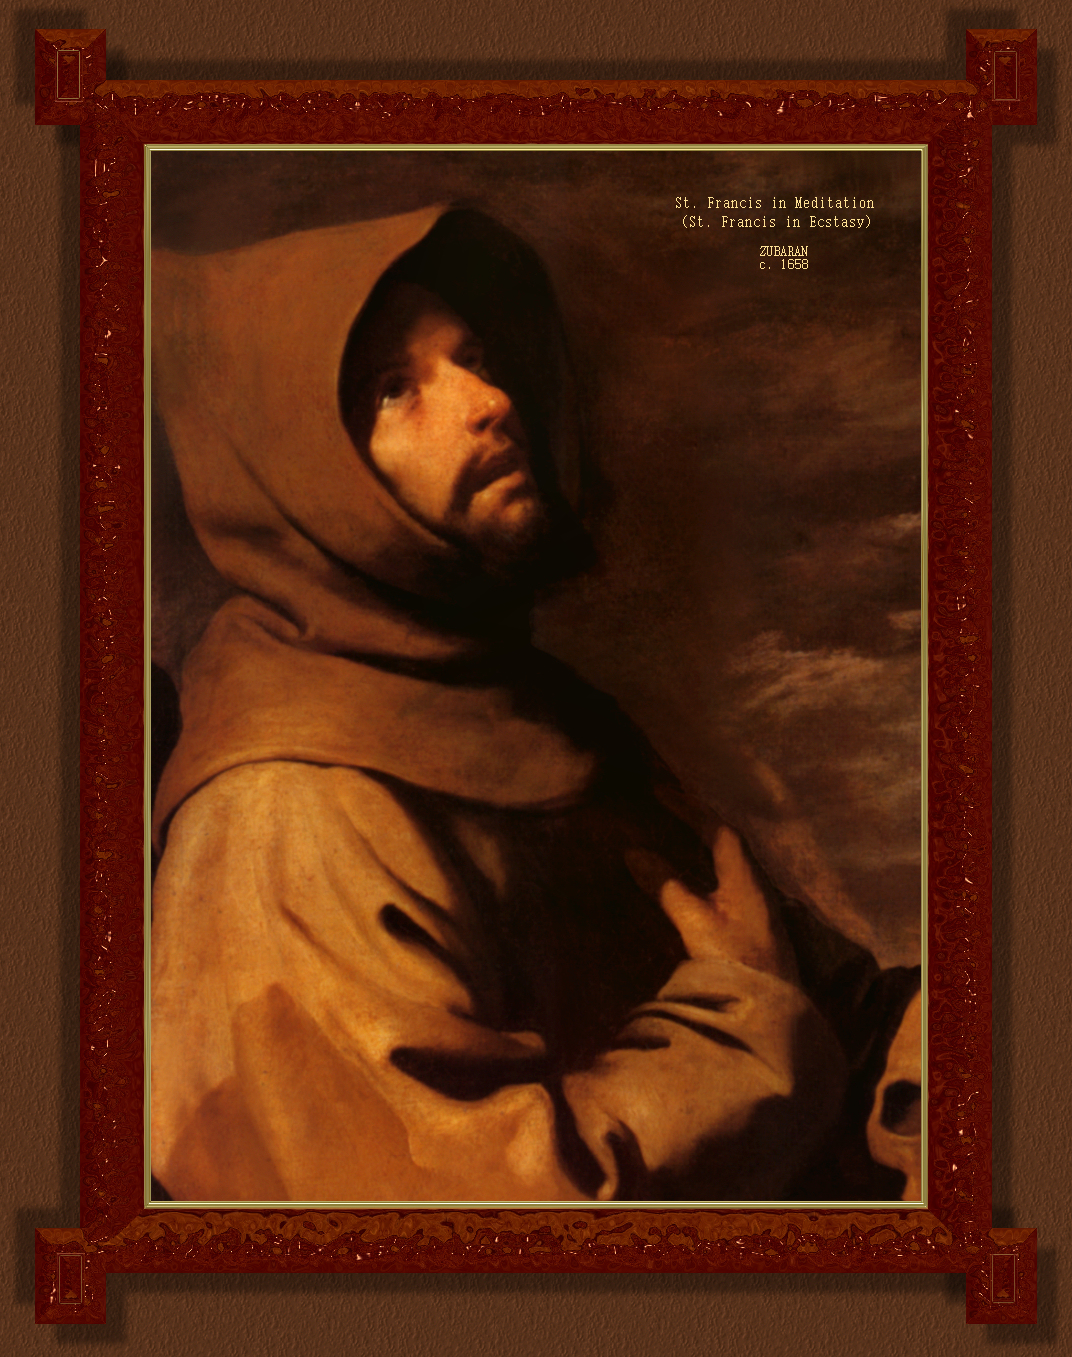 saint francis assisi essay Saint francis of assisi was born in assisi, italy, in 1182 francis was originally named giovanni francesco bernardone, and never received a formal education want to read the rest of this paper join essayworld today to view this entire essay and over 50,000 other term papers.